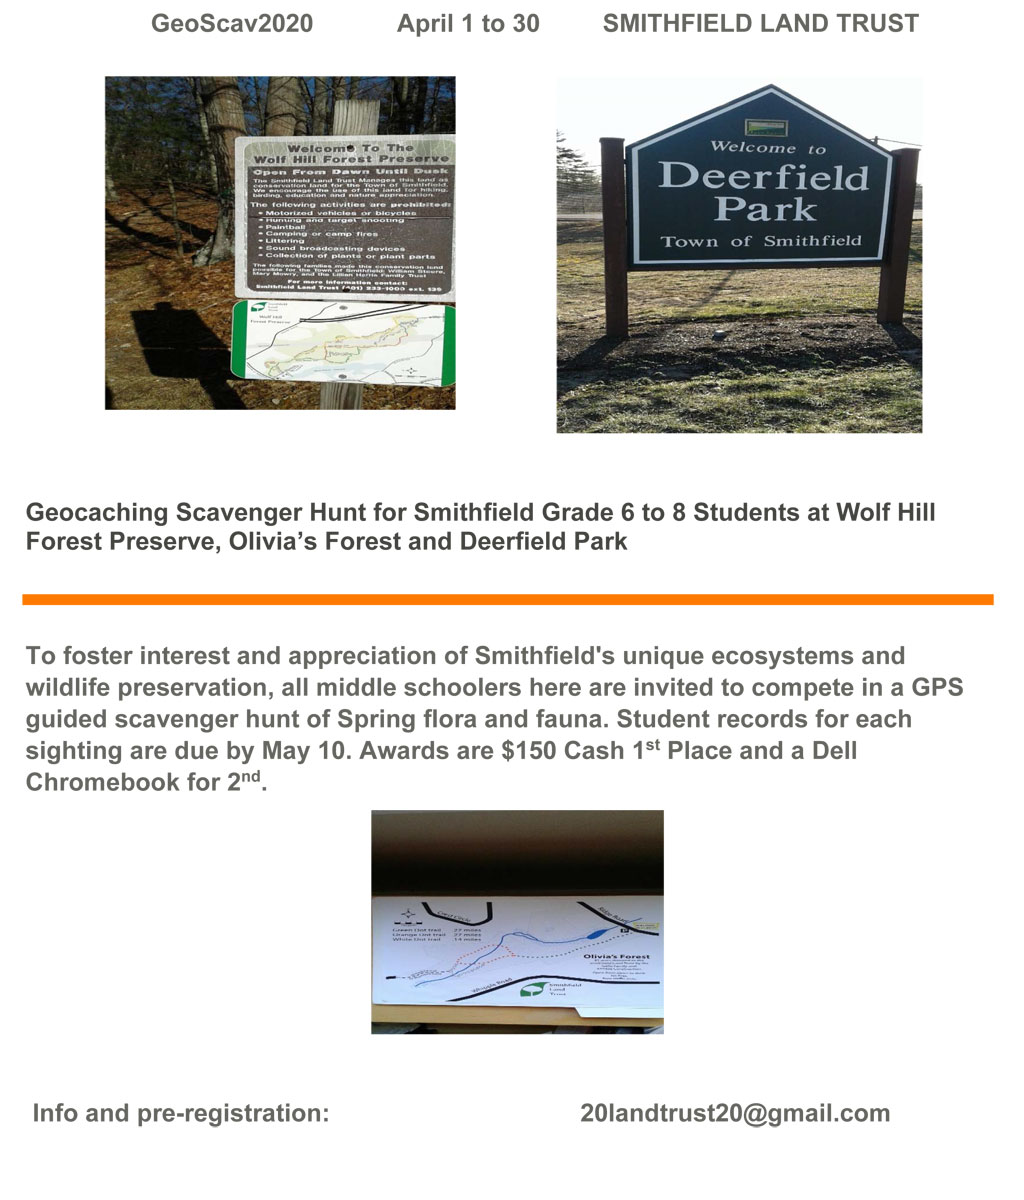 Geocaching Scavenger Hunt for Smithfield Grade 6 to 8 Students April 1 to 30